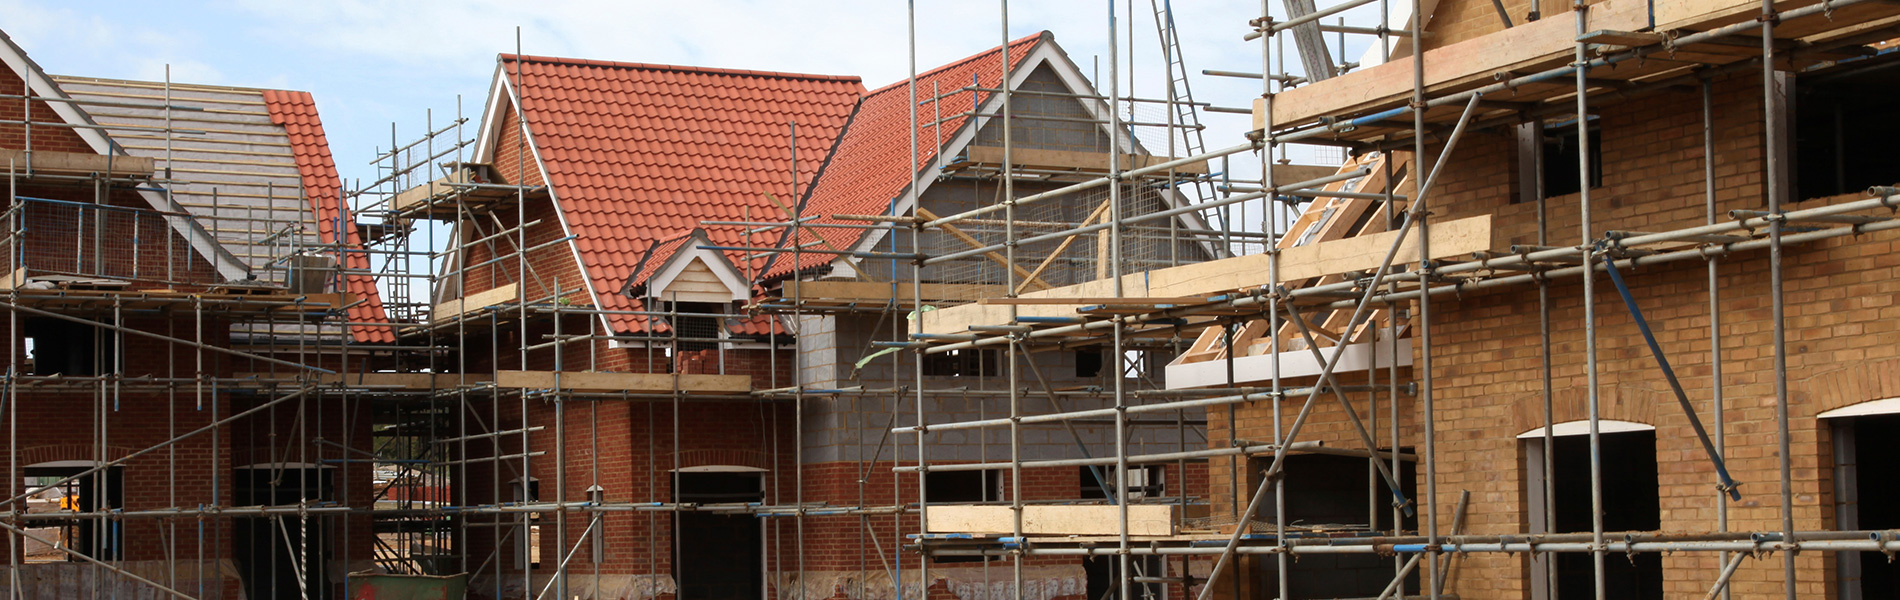 brexit could affect house prices housebuilders reliance 3